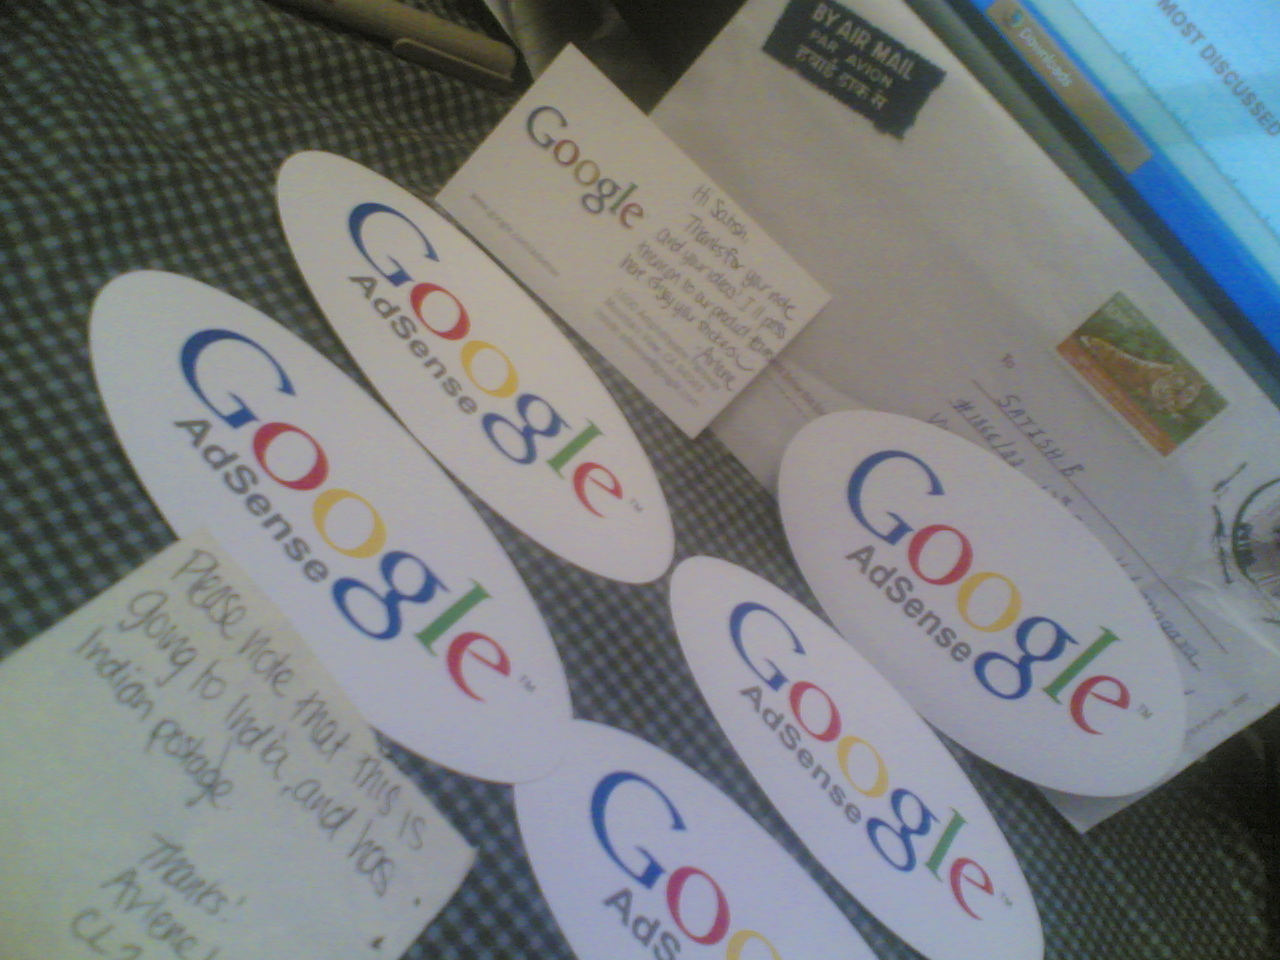 Google Adsense Stickers business card Google Goodies and Goodness